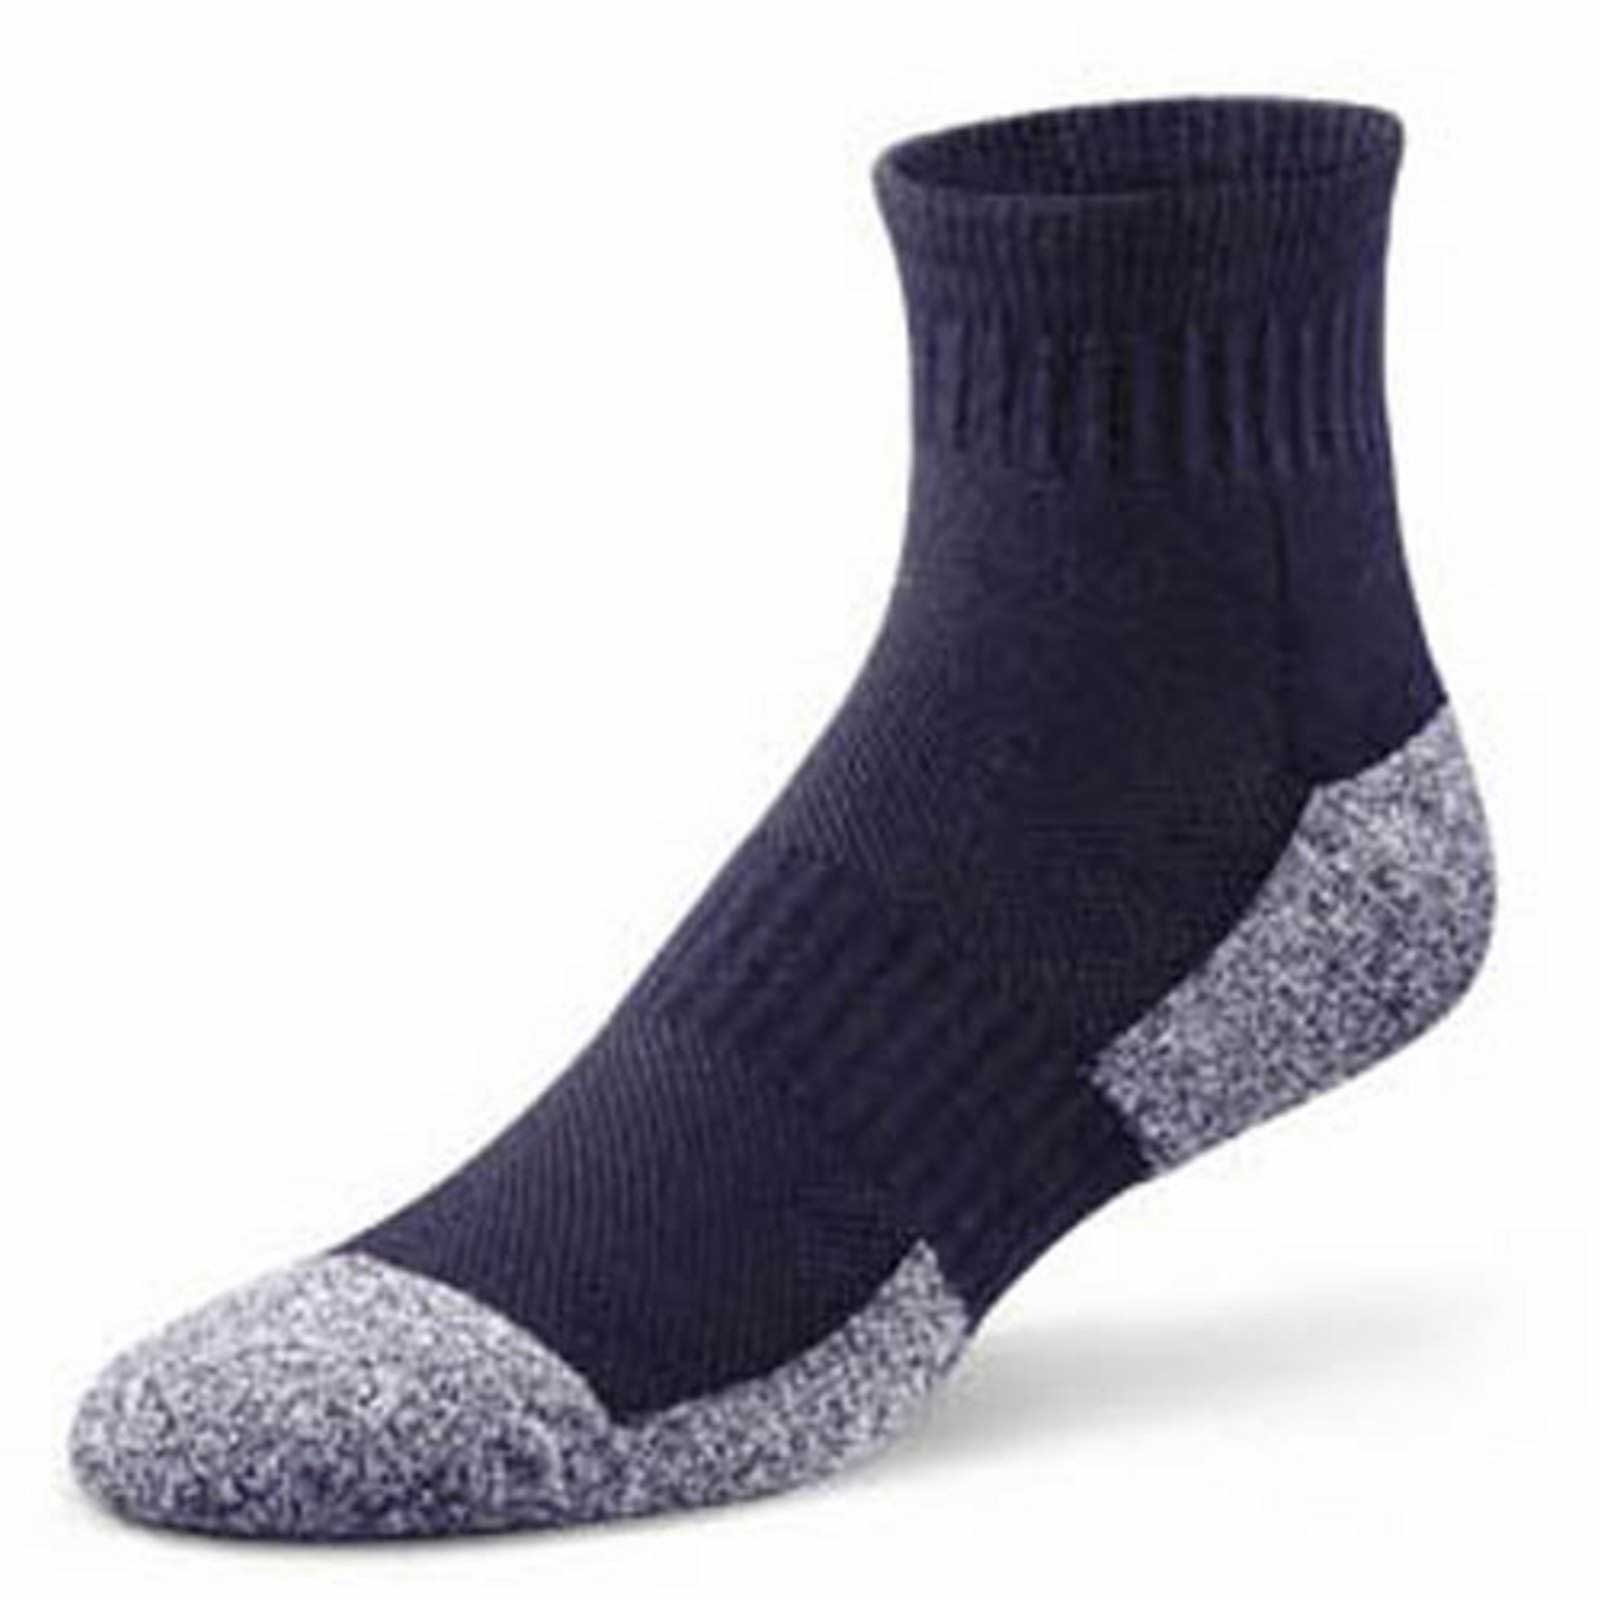 Dr Comfort Ankle Socks (4 Pair) - Men's Therapeutic Diabetic Socks - Athletic, Casual, Dress - X-Small (4) - X-Large (15) at Sears.com